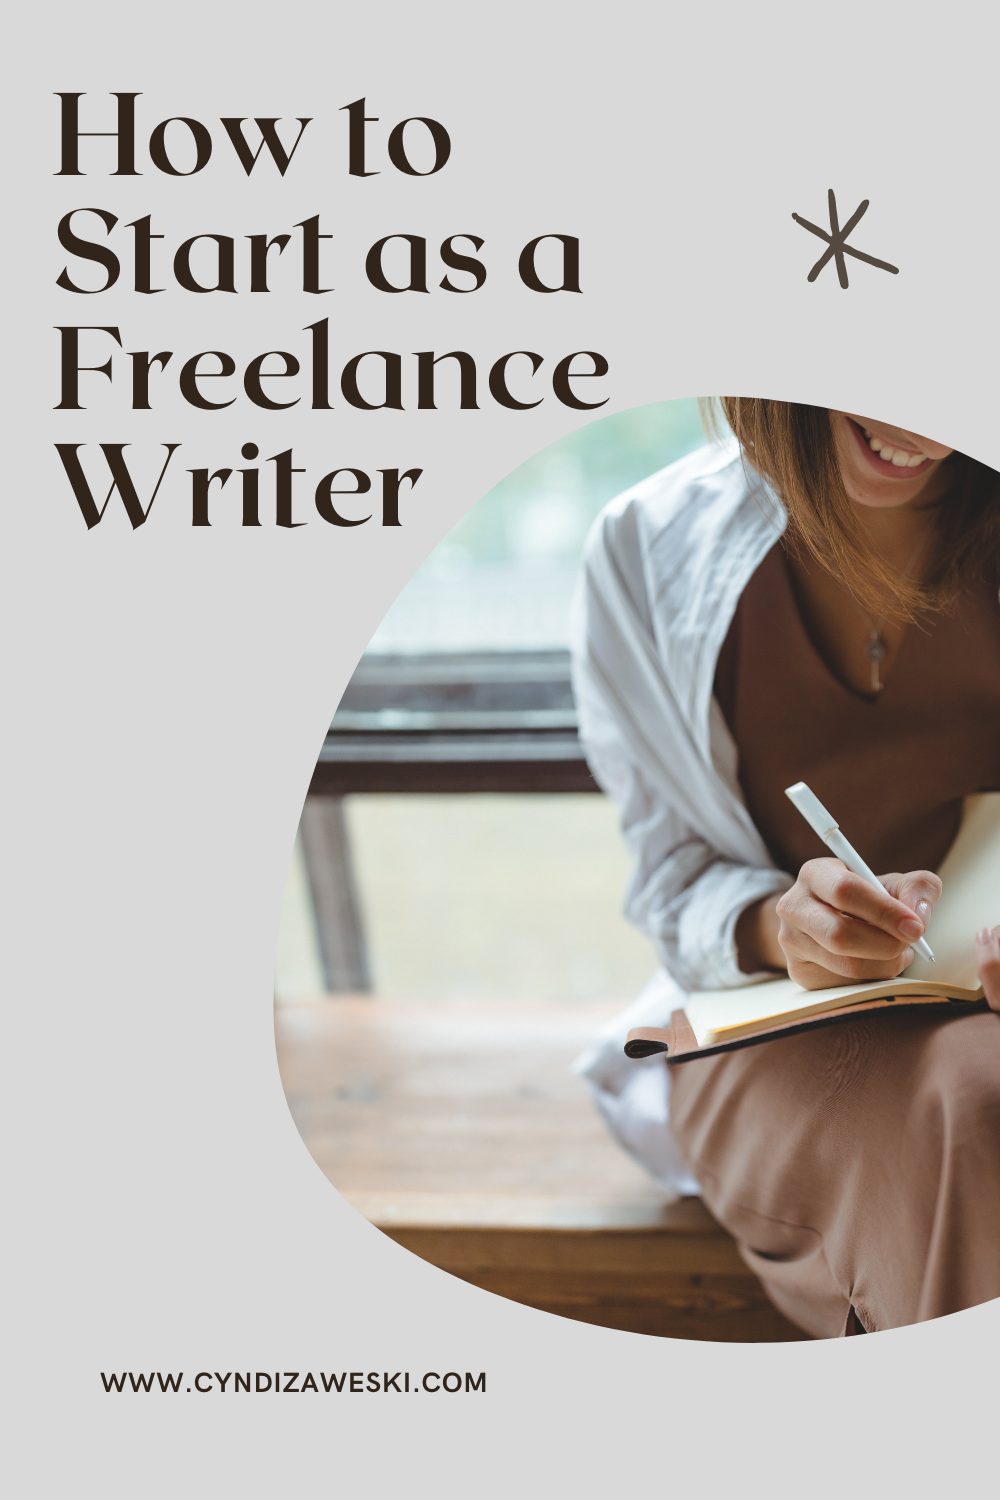 These are a few tips I wish I knew when I started freelancing years ago. Give yourself an edge with these best practices. #copywritersofinstagram #copywritingforcreatives #copywritingservice #socialmediamanager #socialmediastrategy #socialmediahelp #socialmediaexpert #socialmediamarketingagency #womeninbusiness #entrepreneurlife #smallbizowner #smallbiztips #entrepreneurs #marketingstrategy